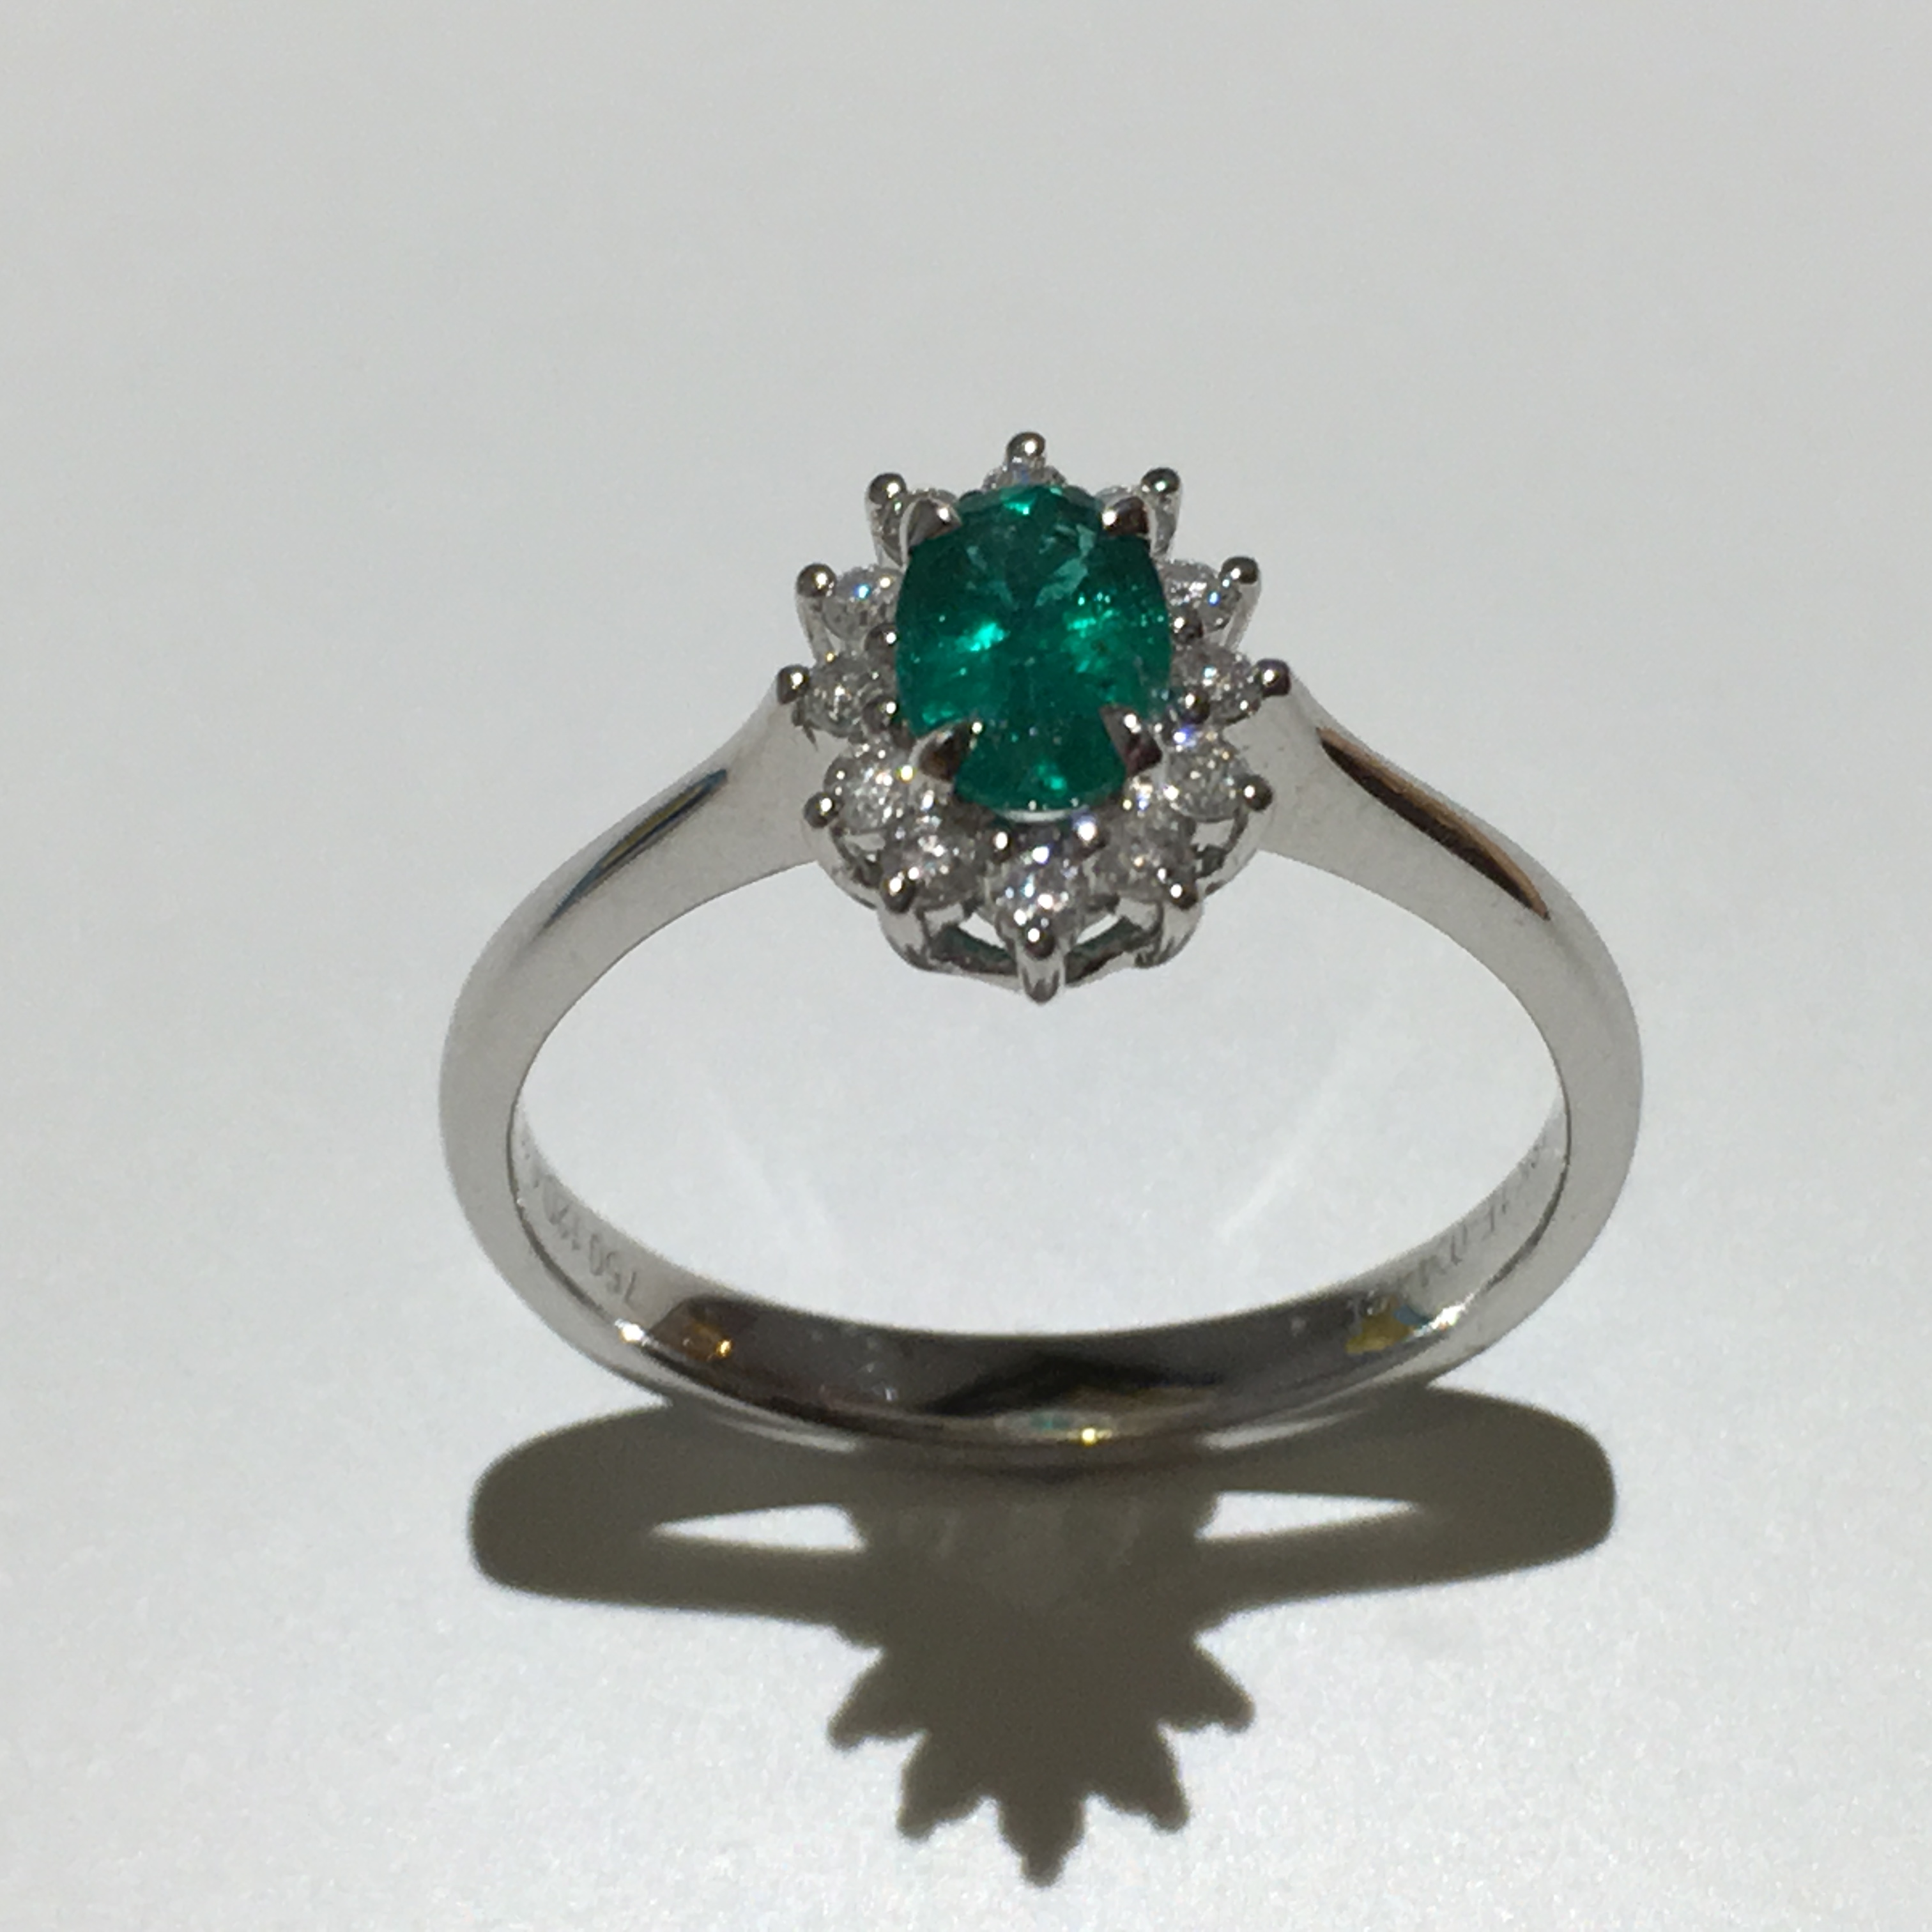 gemstones are auctions rings gemstone green gems which learn you gem know did rock